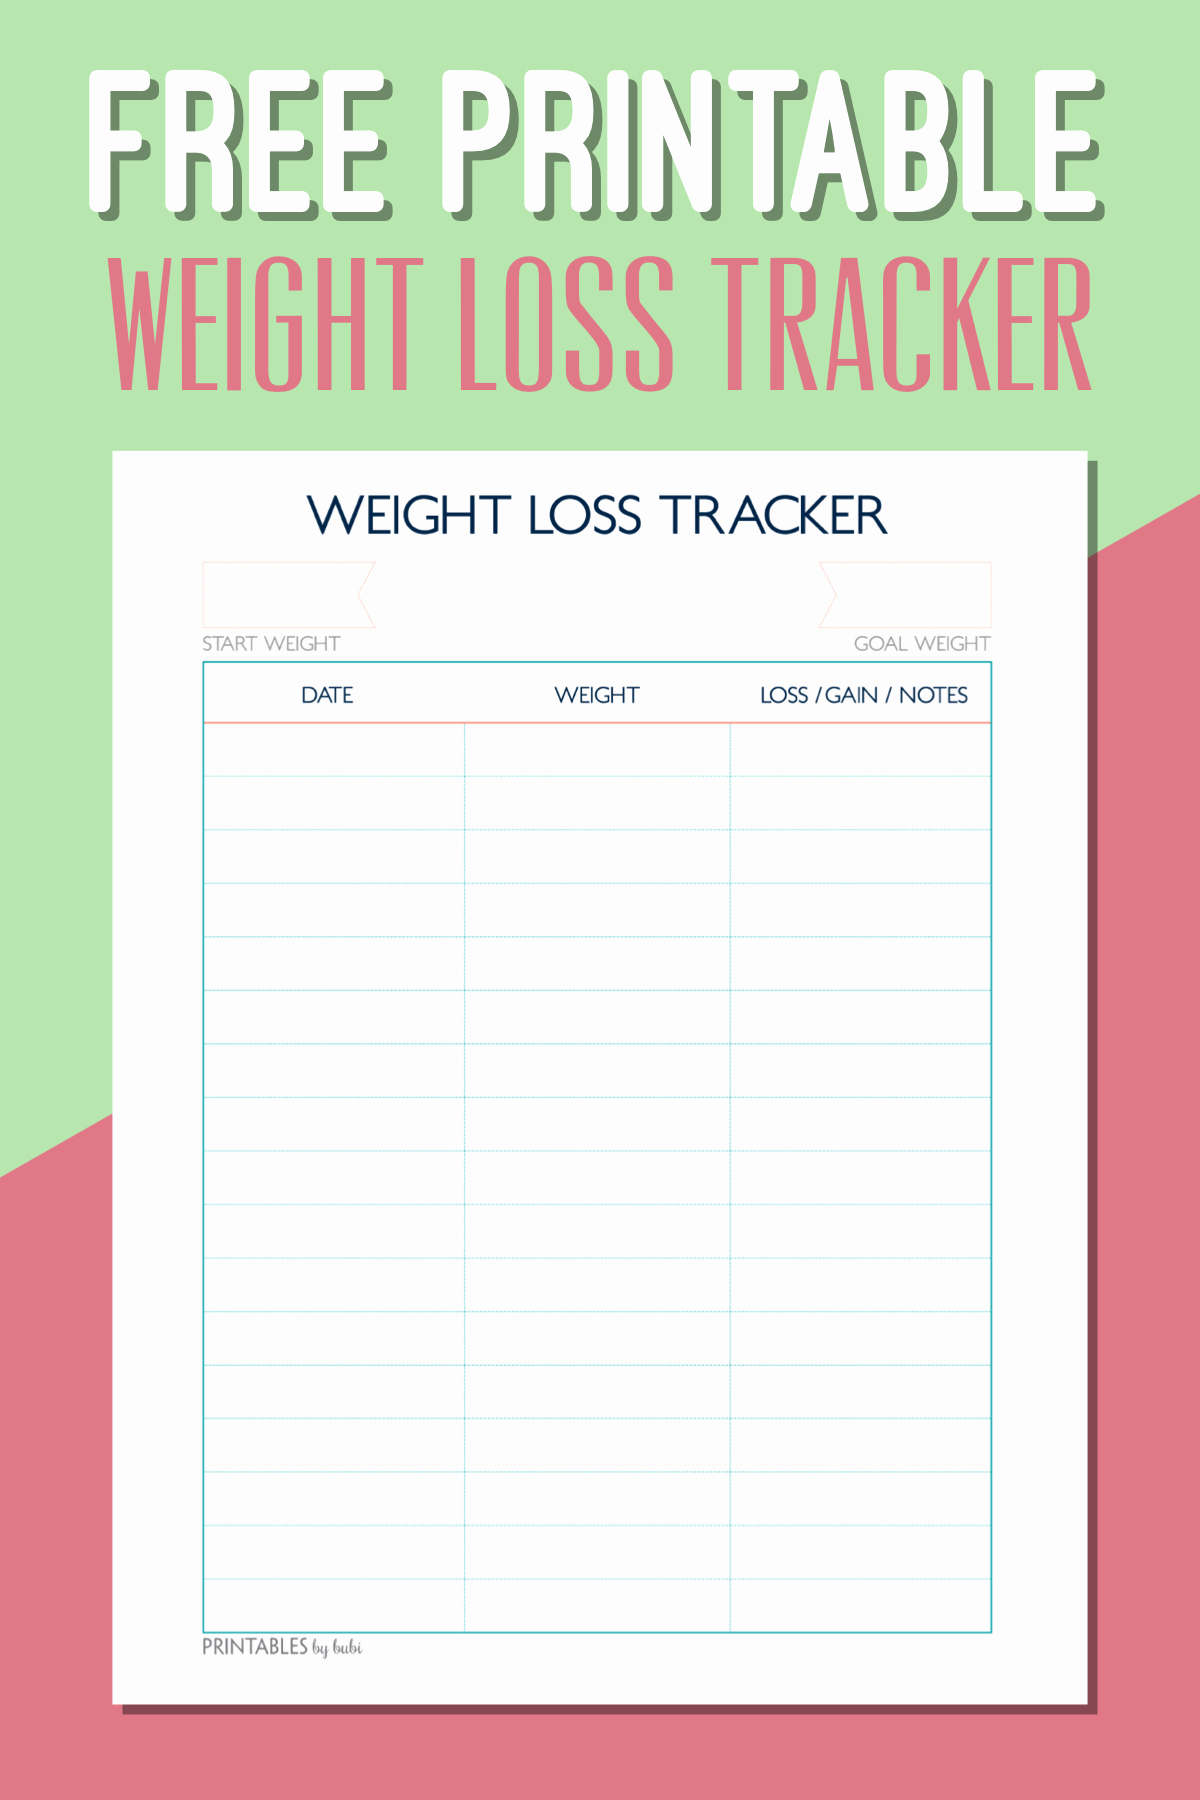 Free Printable Weight Loss Tracker Fresh Free Printable Weight Loss Tracker – Instant Download Pdf